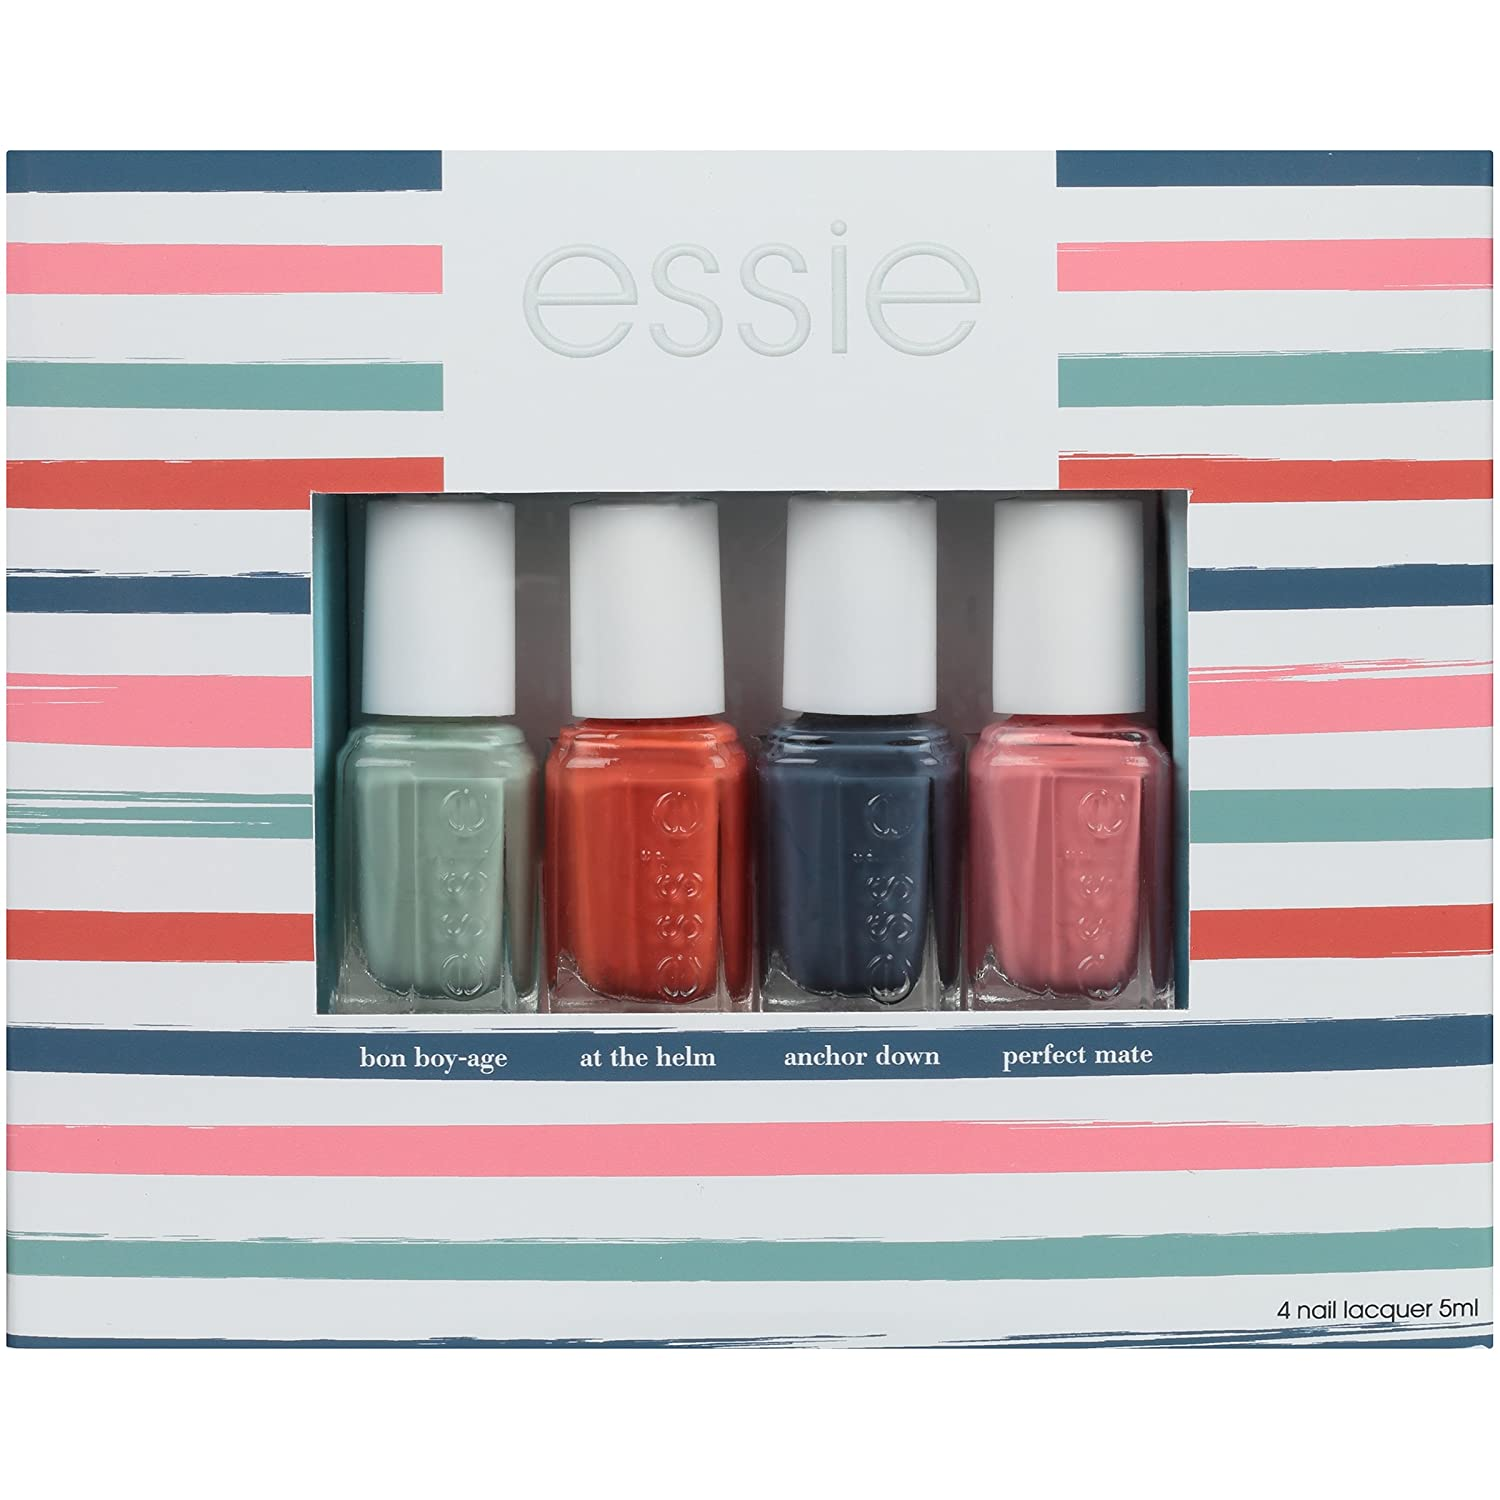 Amazon.com: essie Spring 2018 Nail Polish Collection, Set of 4 ...